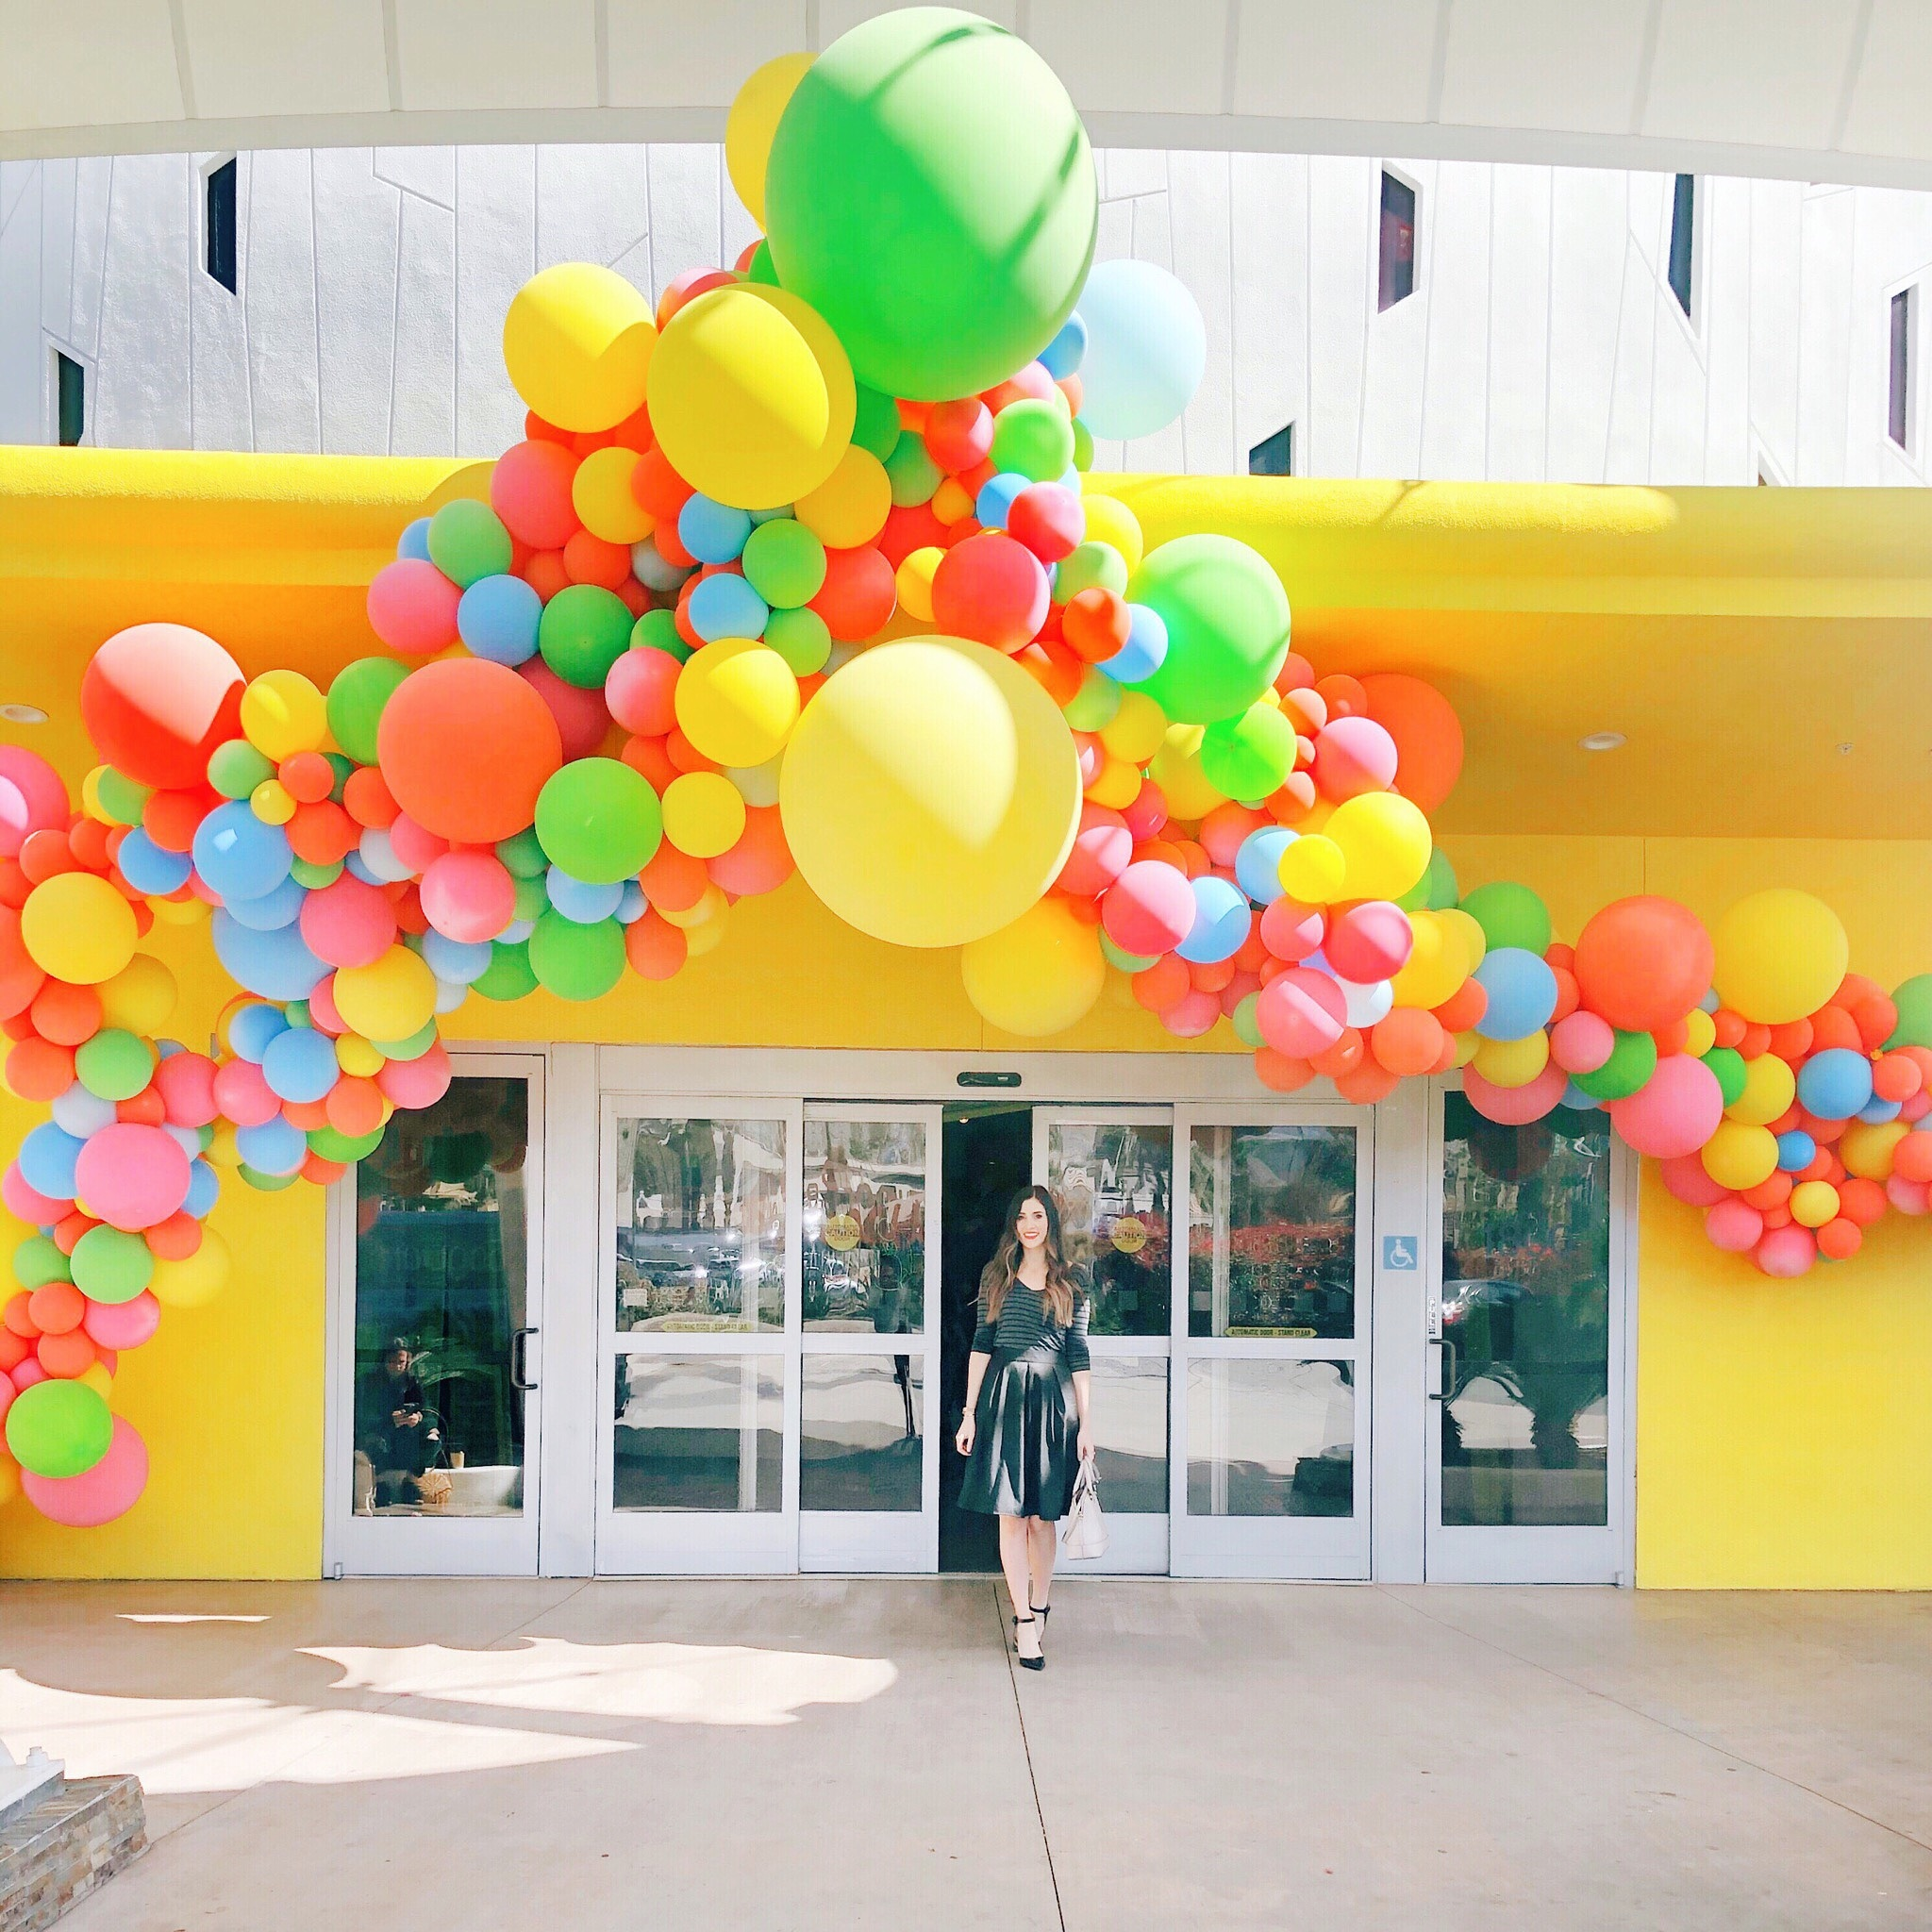 Alt Summit Balloon Display - Luxury Balloon Installations - SF LA National - Zim Balloons -.jpg